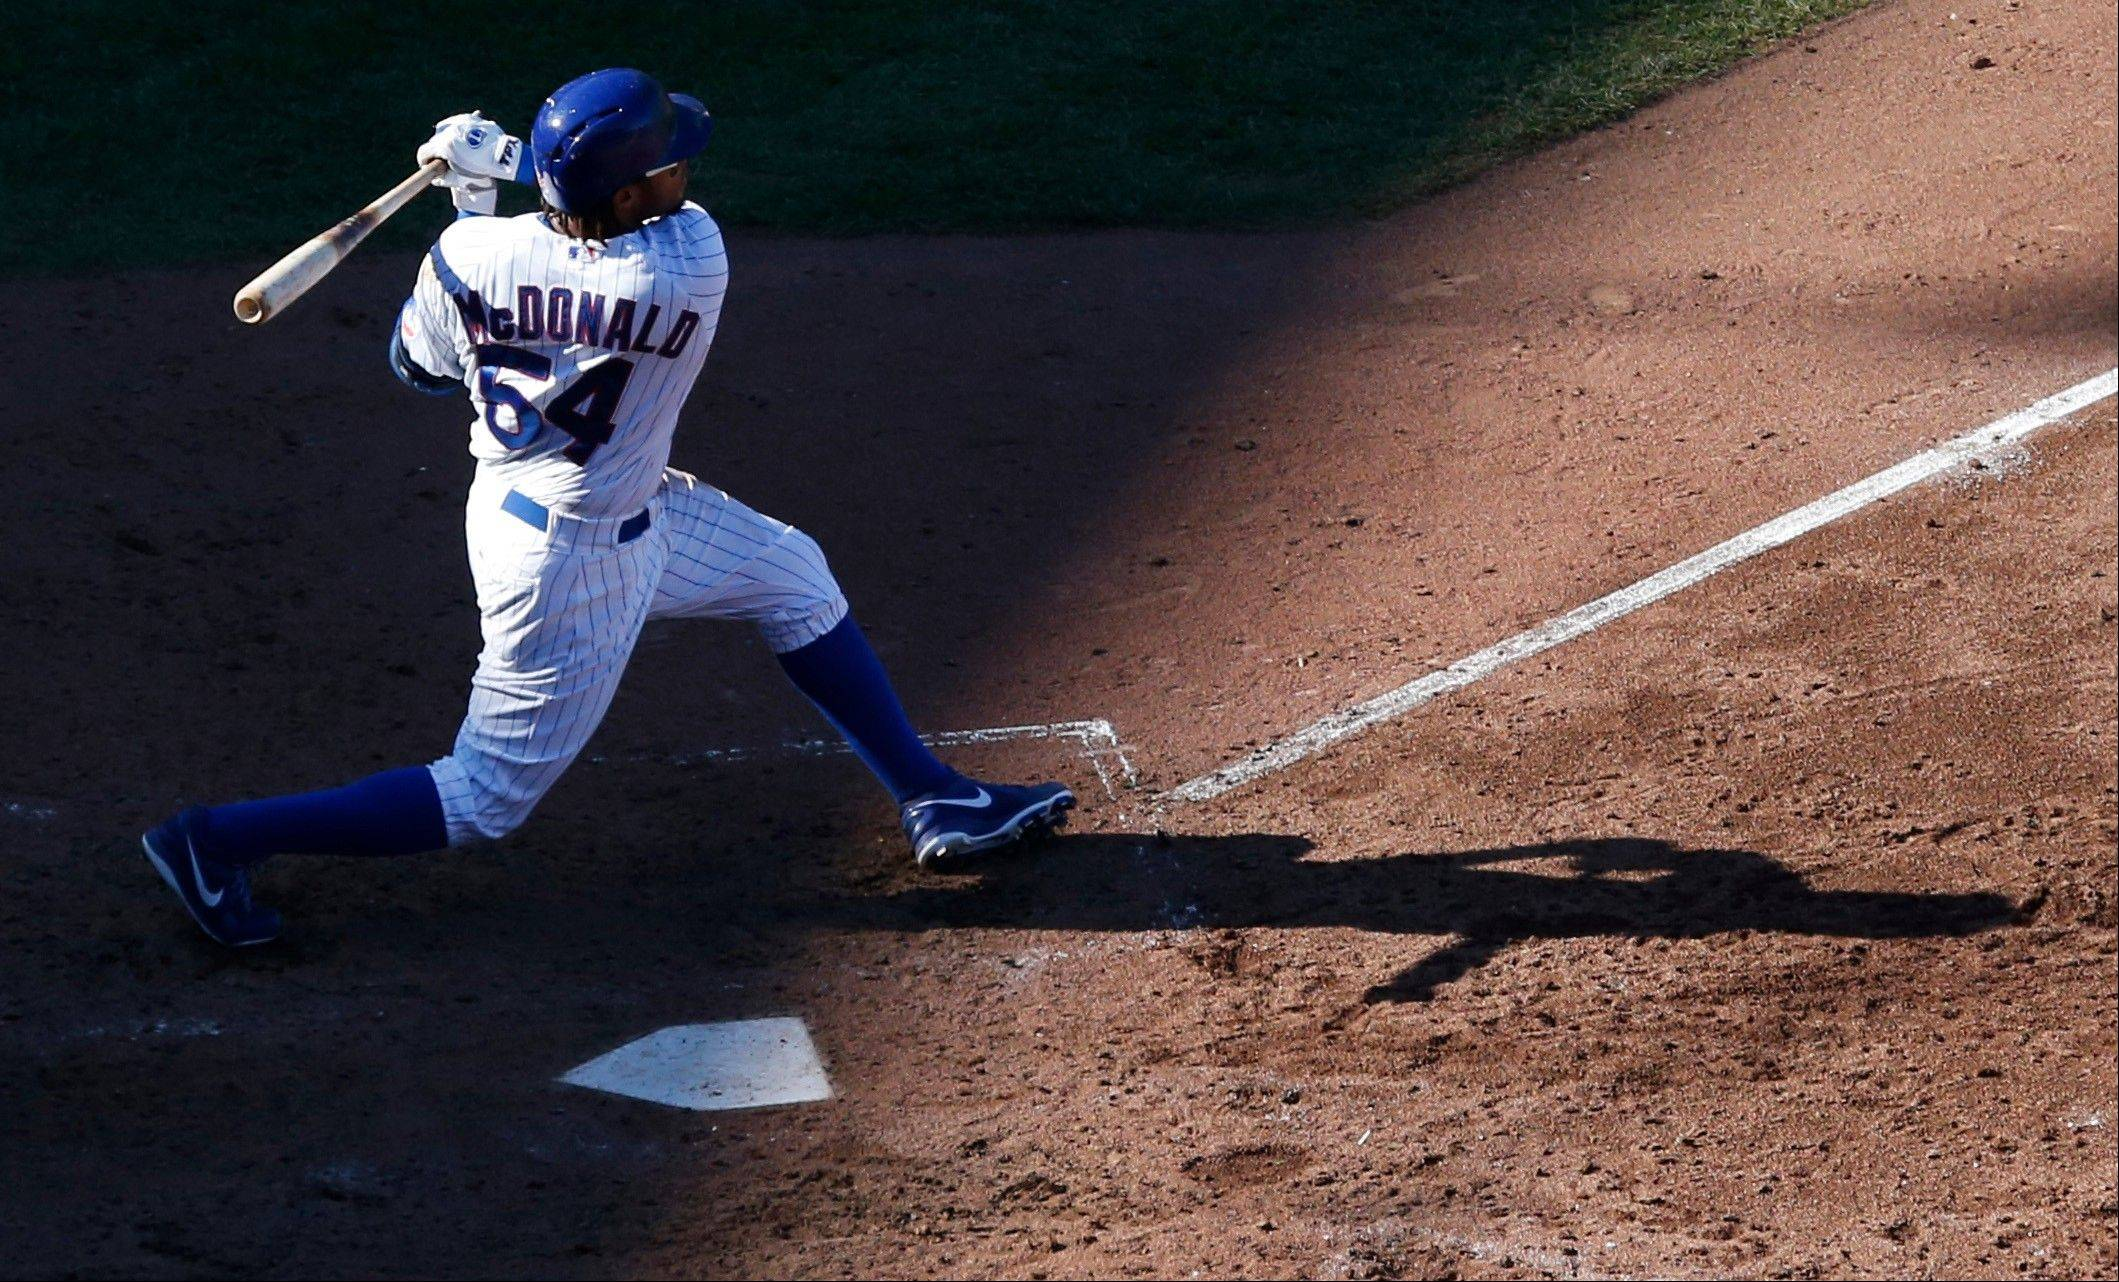 Bittersweet win for Cubs at Wrigley